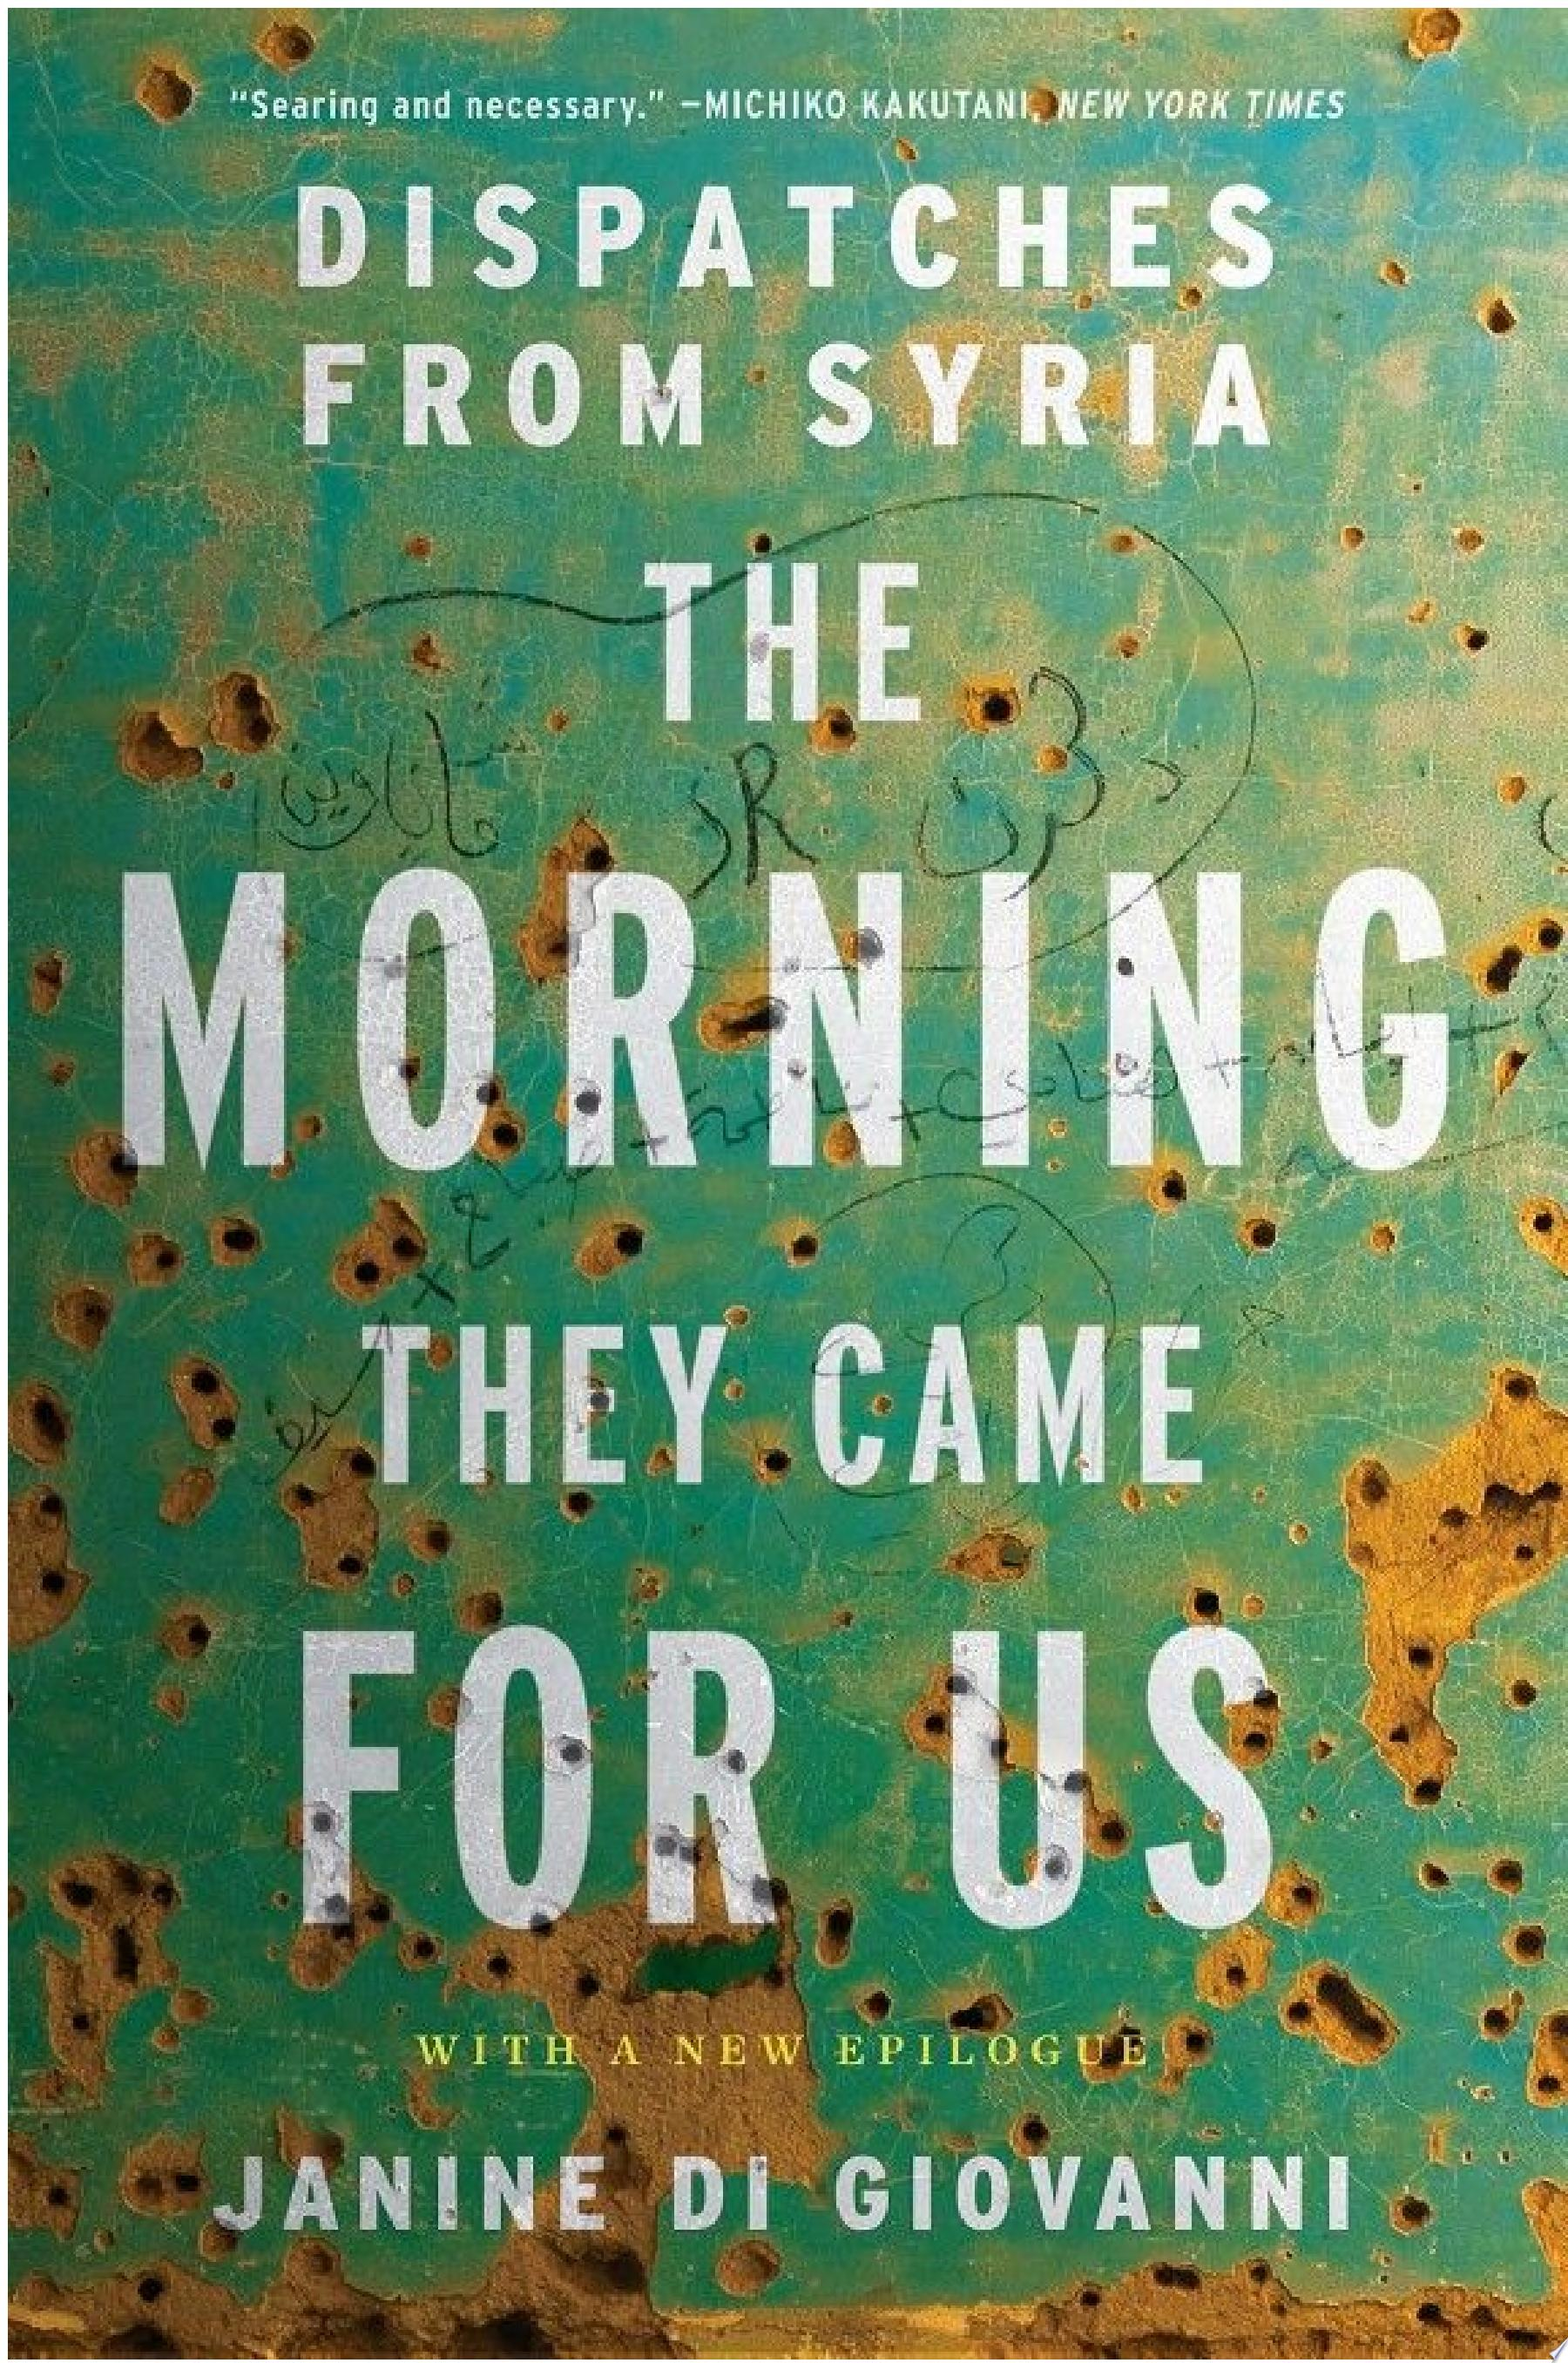 The Morning They Came For Us  Dispatches from Syria